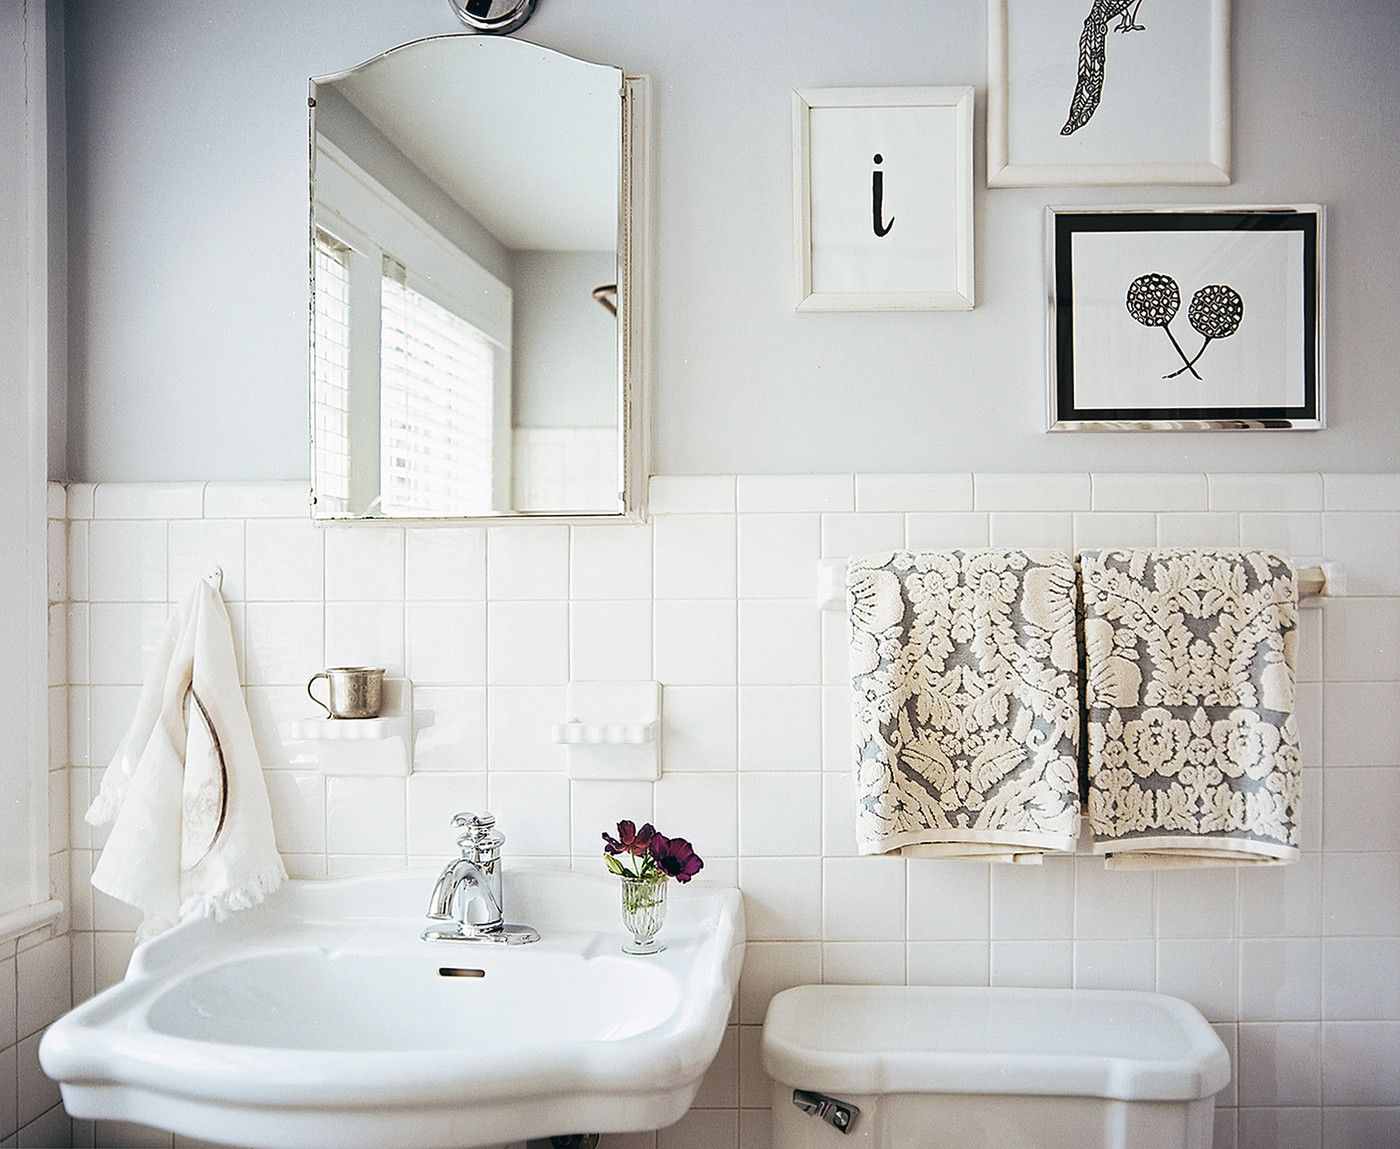 Bathroom Towel Hooks Photos | White tiles, Pedestal sink and Vintage ...